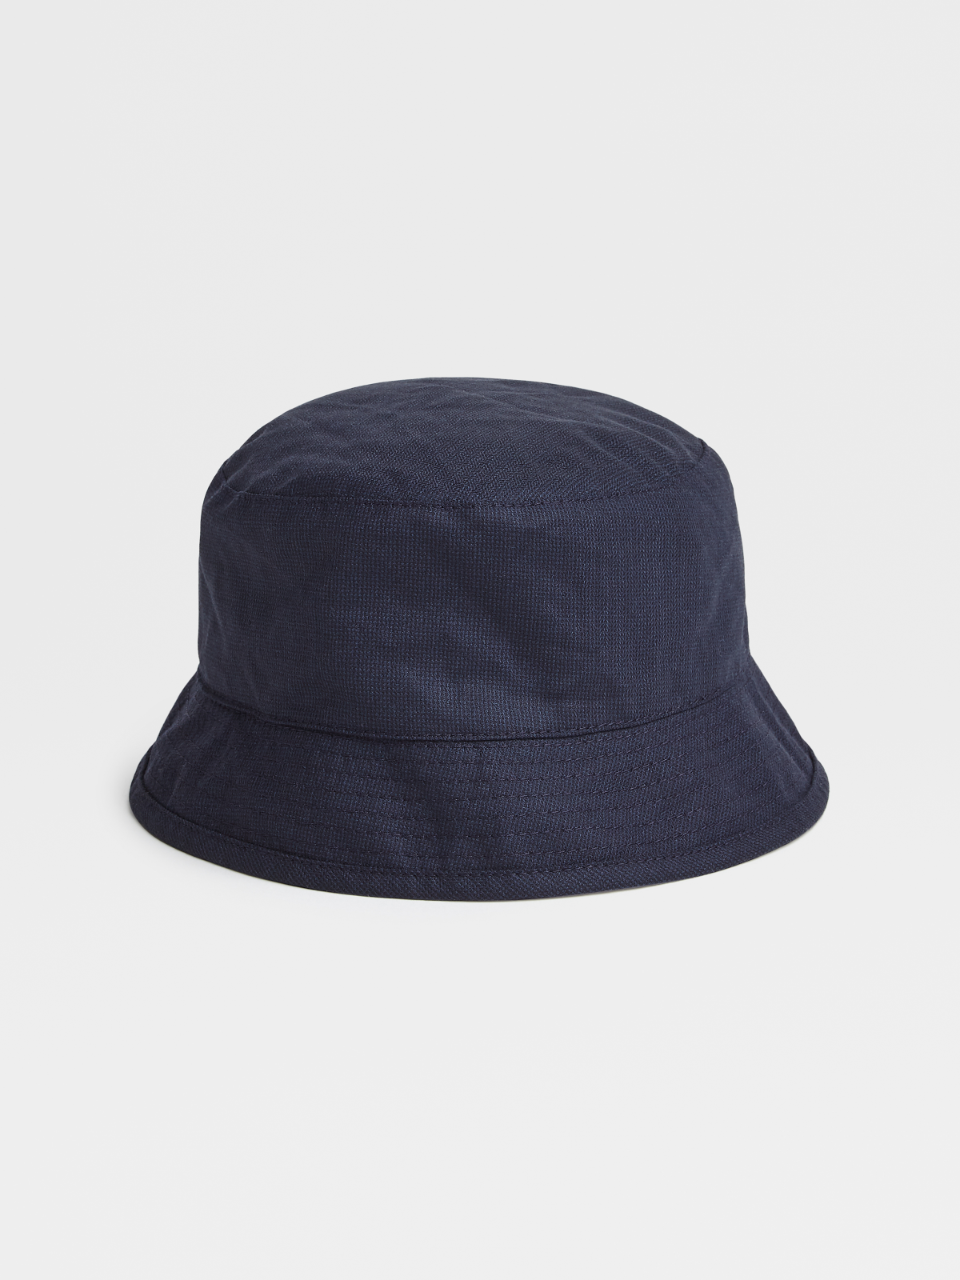 High Performance Packaway Bucket Hat